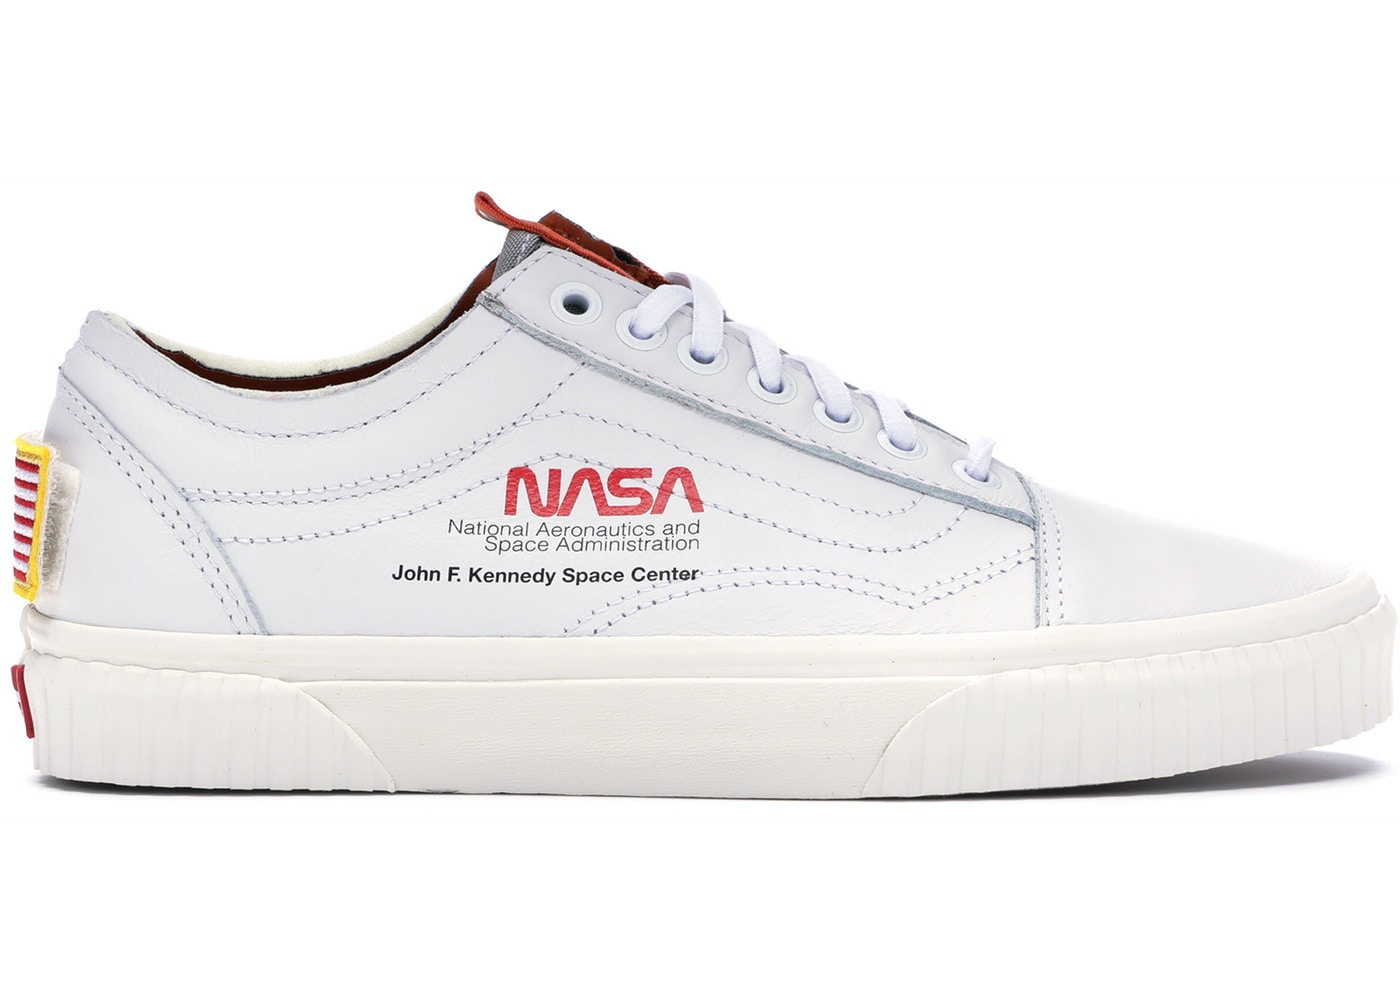 5051f8621a73 Vans Old Skool NASA Space Voyager True White - VN0A38G1UP9 ...